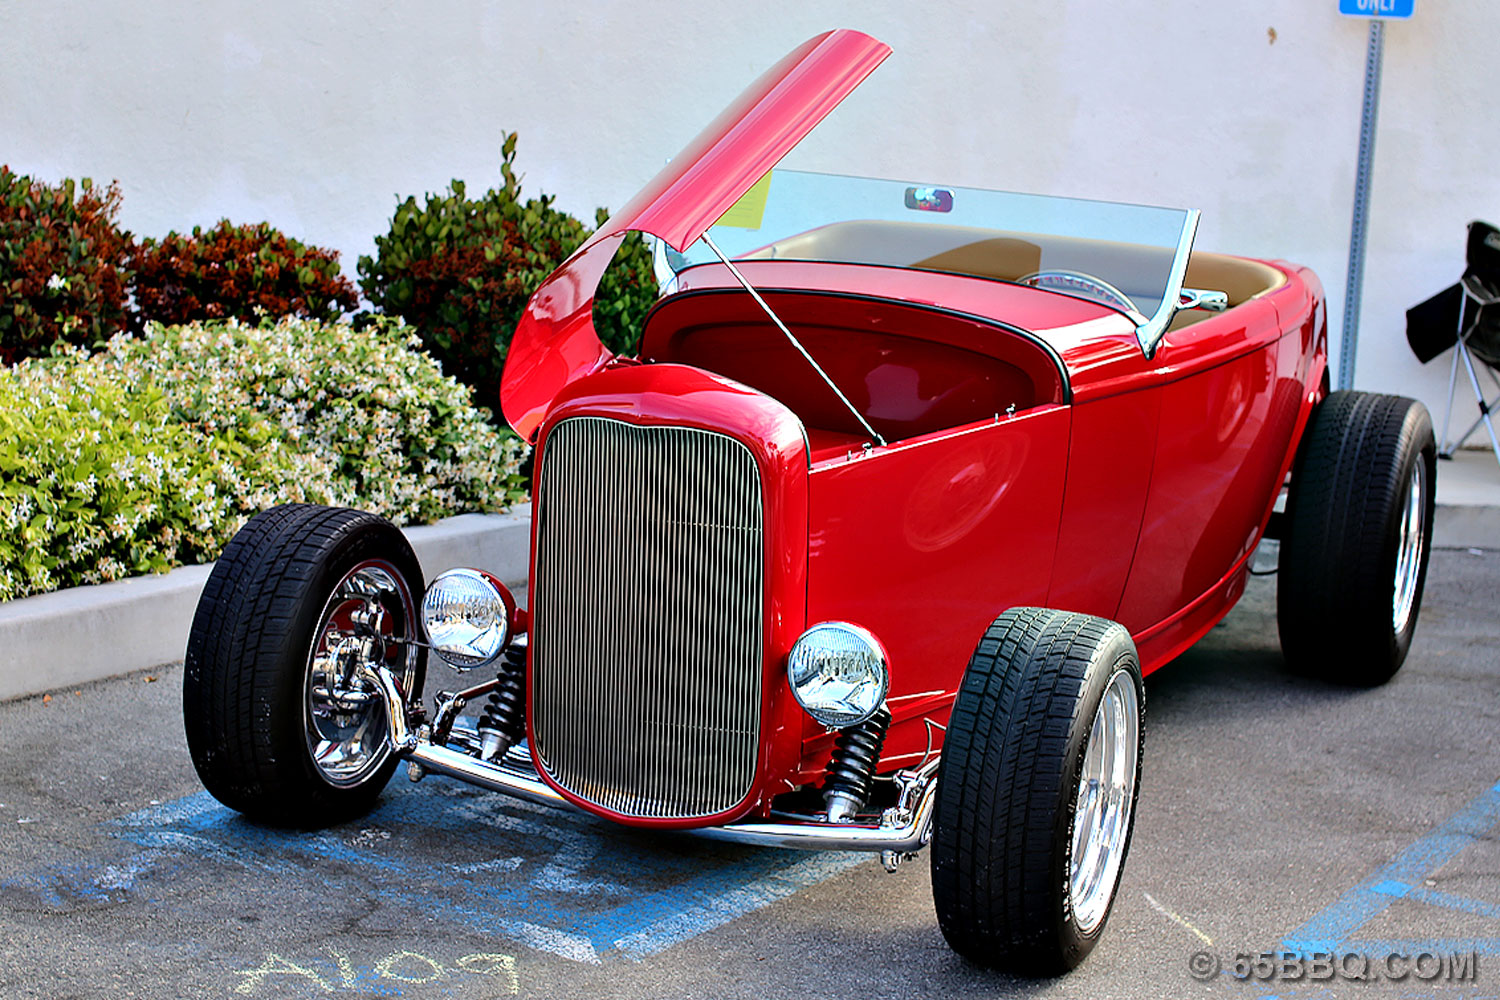 Seal-Beach-Carshow-65bbq-Ro-Red1s45f.jpg